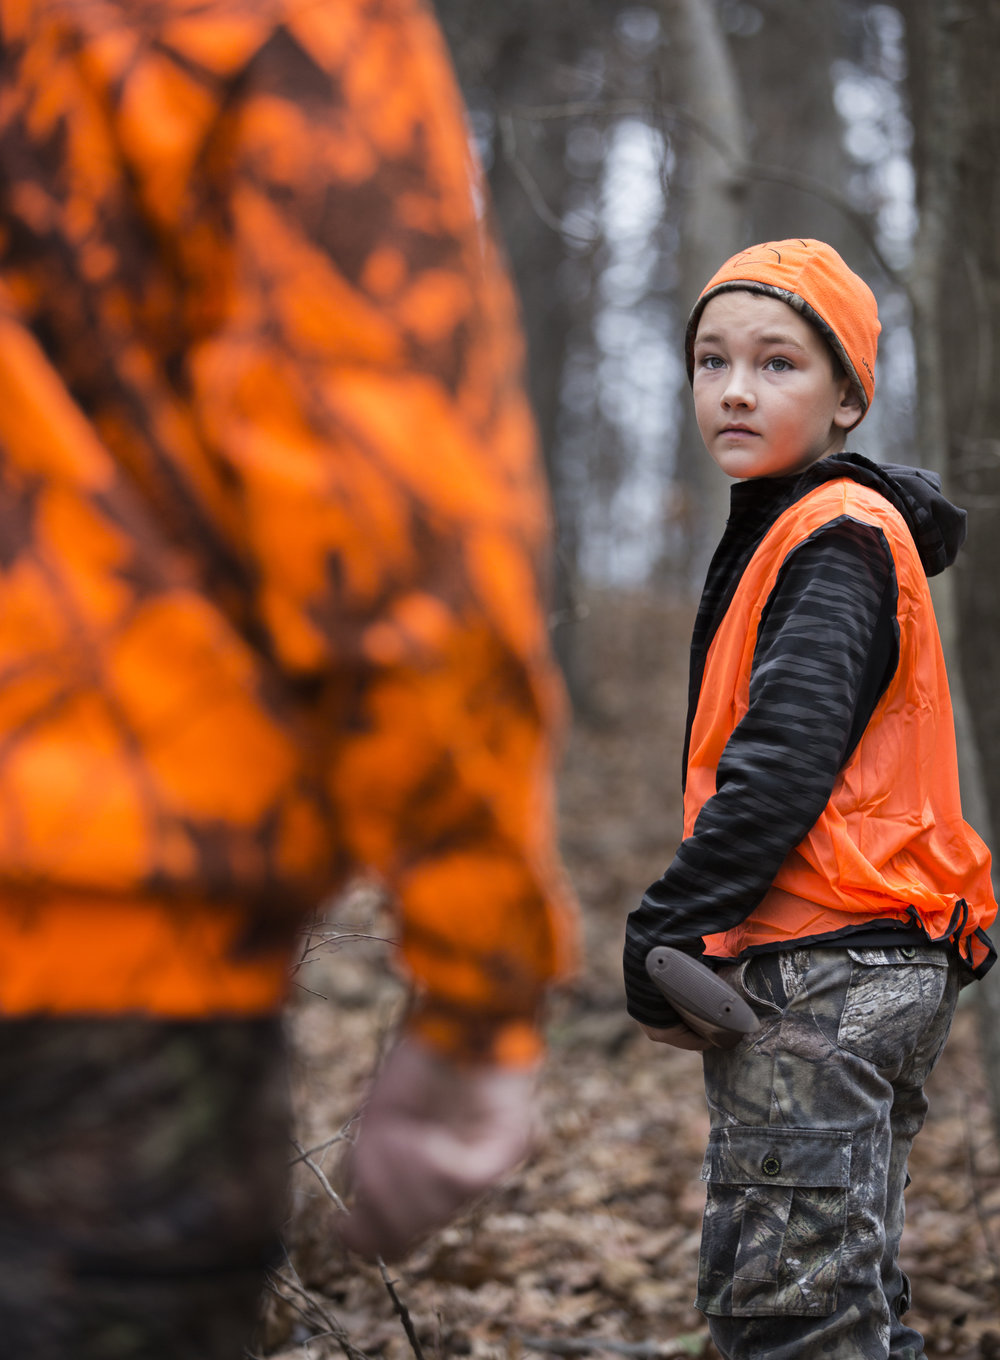 Tristen listens to advice from his father Tom while hunting in Wellston, Ohio, on November 18, 2017. Tom says that Tristen has been joining him on hunts since he could walk.